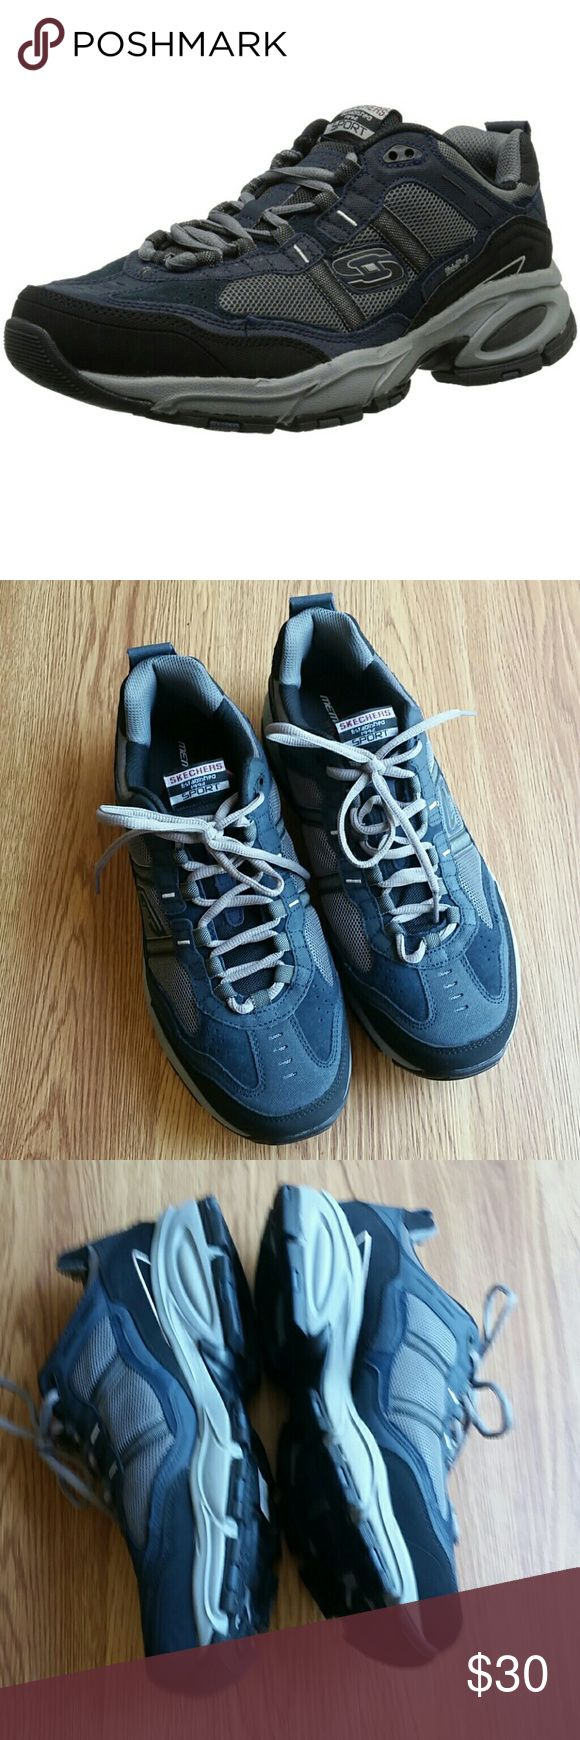 SKETCHER'S memory foam Cross Trainer BRAND NEW w/o box and never worn. Men's memory foam 51241 memory foam cross trainers. Make offer.... They didn't fit hubby and hope they go to good home! Amazing shoes for work, gym etc.   Color: Navy blue, gray, black Skechers Shoes Athletic Shoes